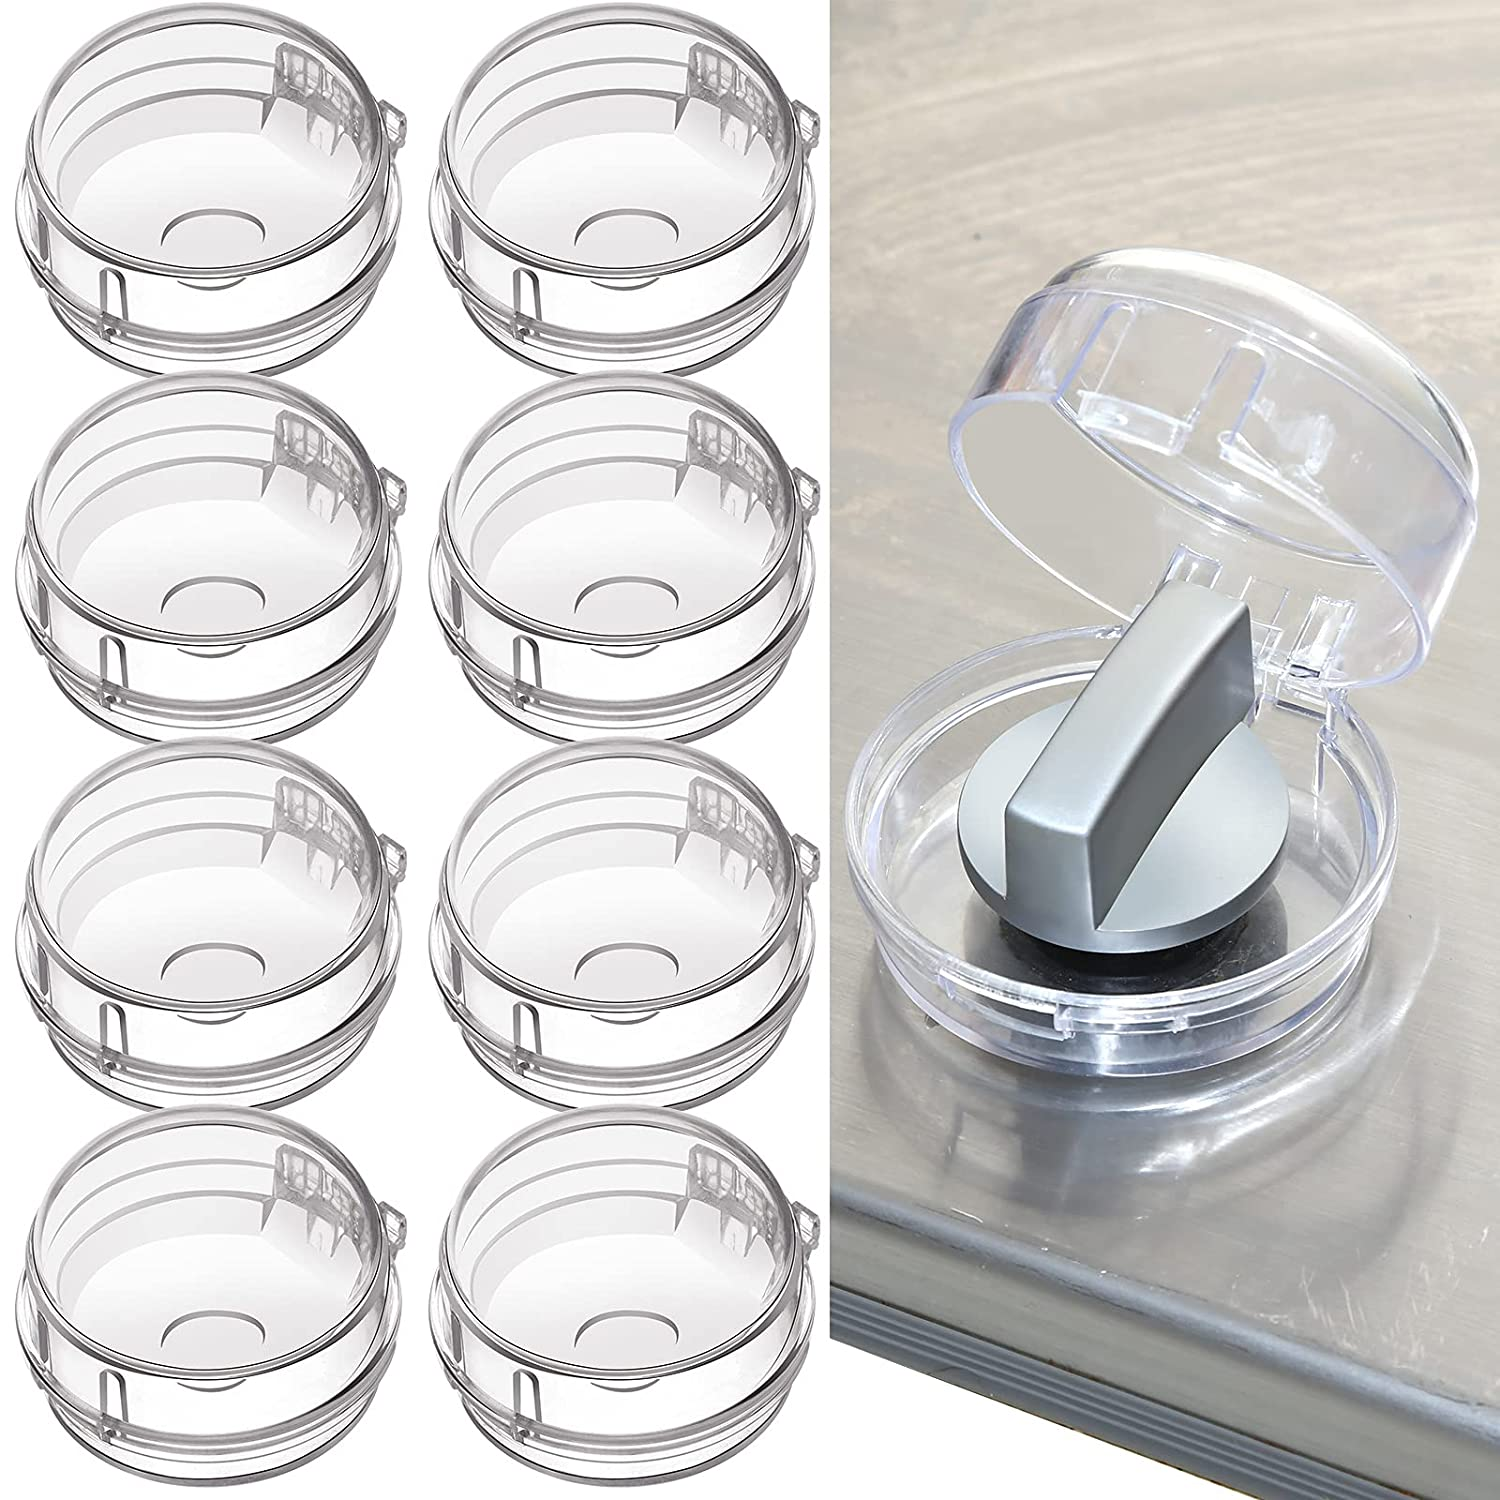 Transparent Stove Knob Covers Kitchen Gas Stove Knob Covers Safety Oven Knob Covers Toddler Child Proof Kitchen Safety Guard Easy to Install for Home Kitchen (8 Pieces)